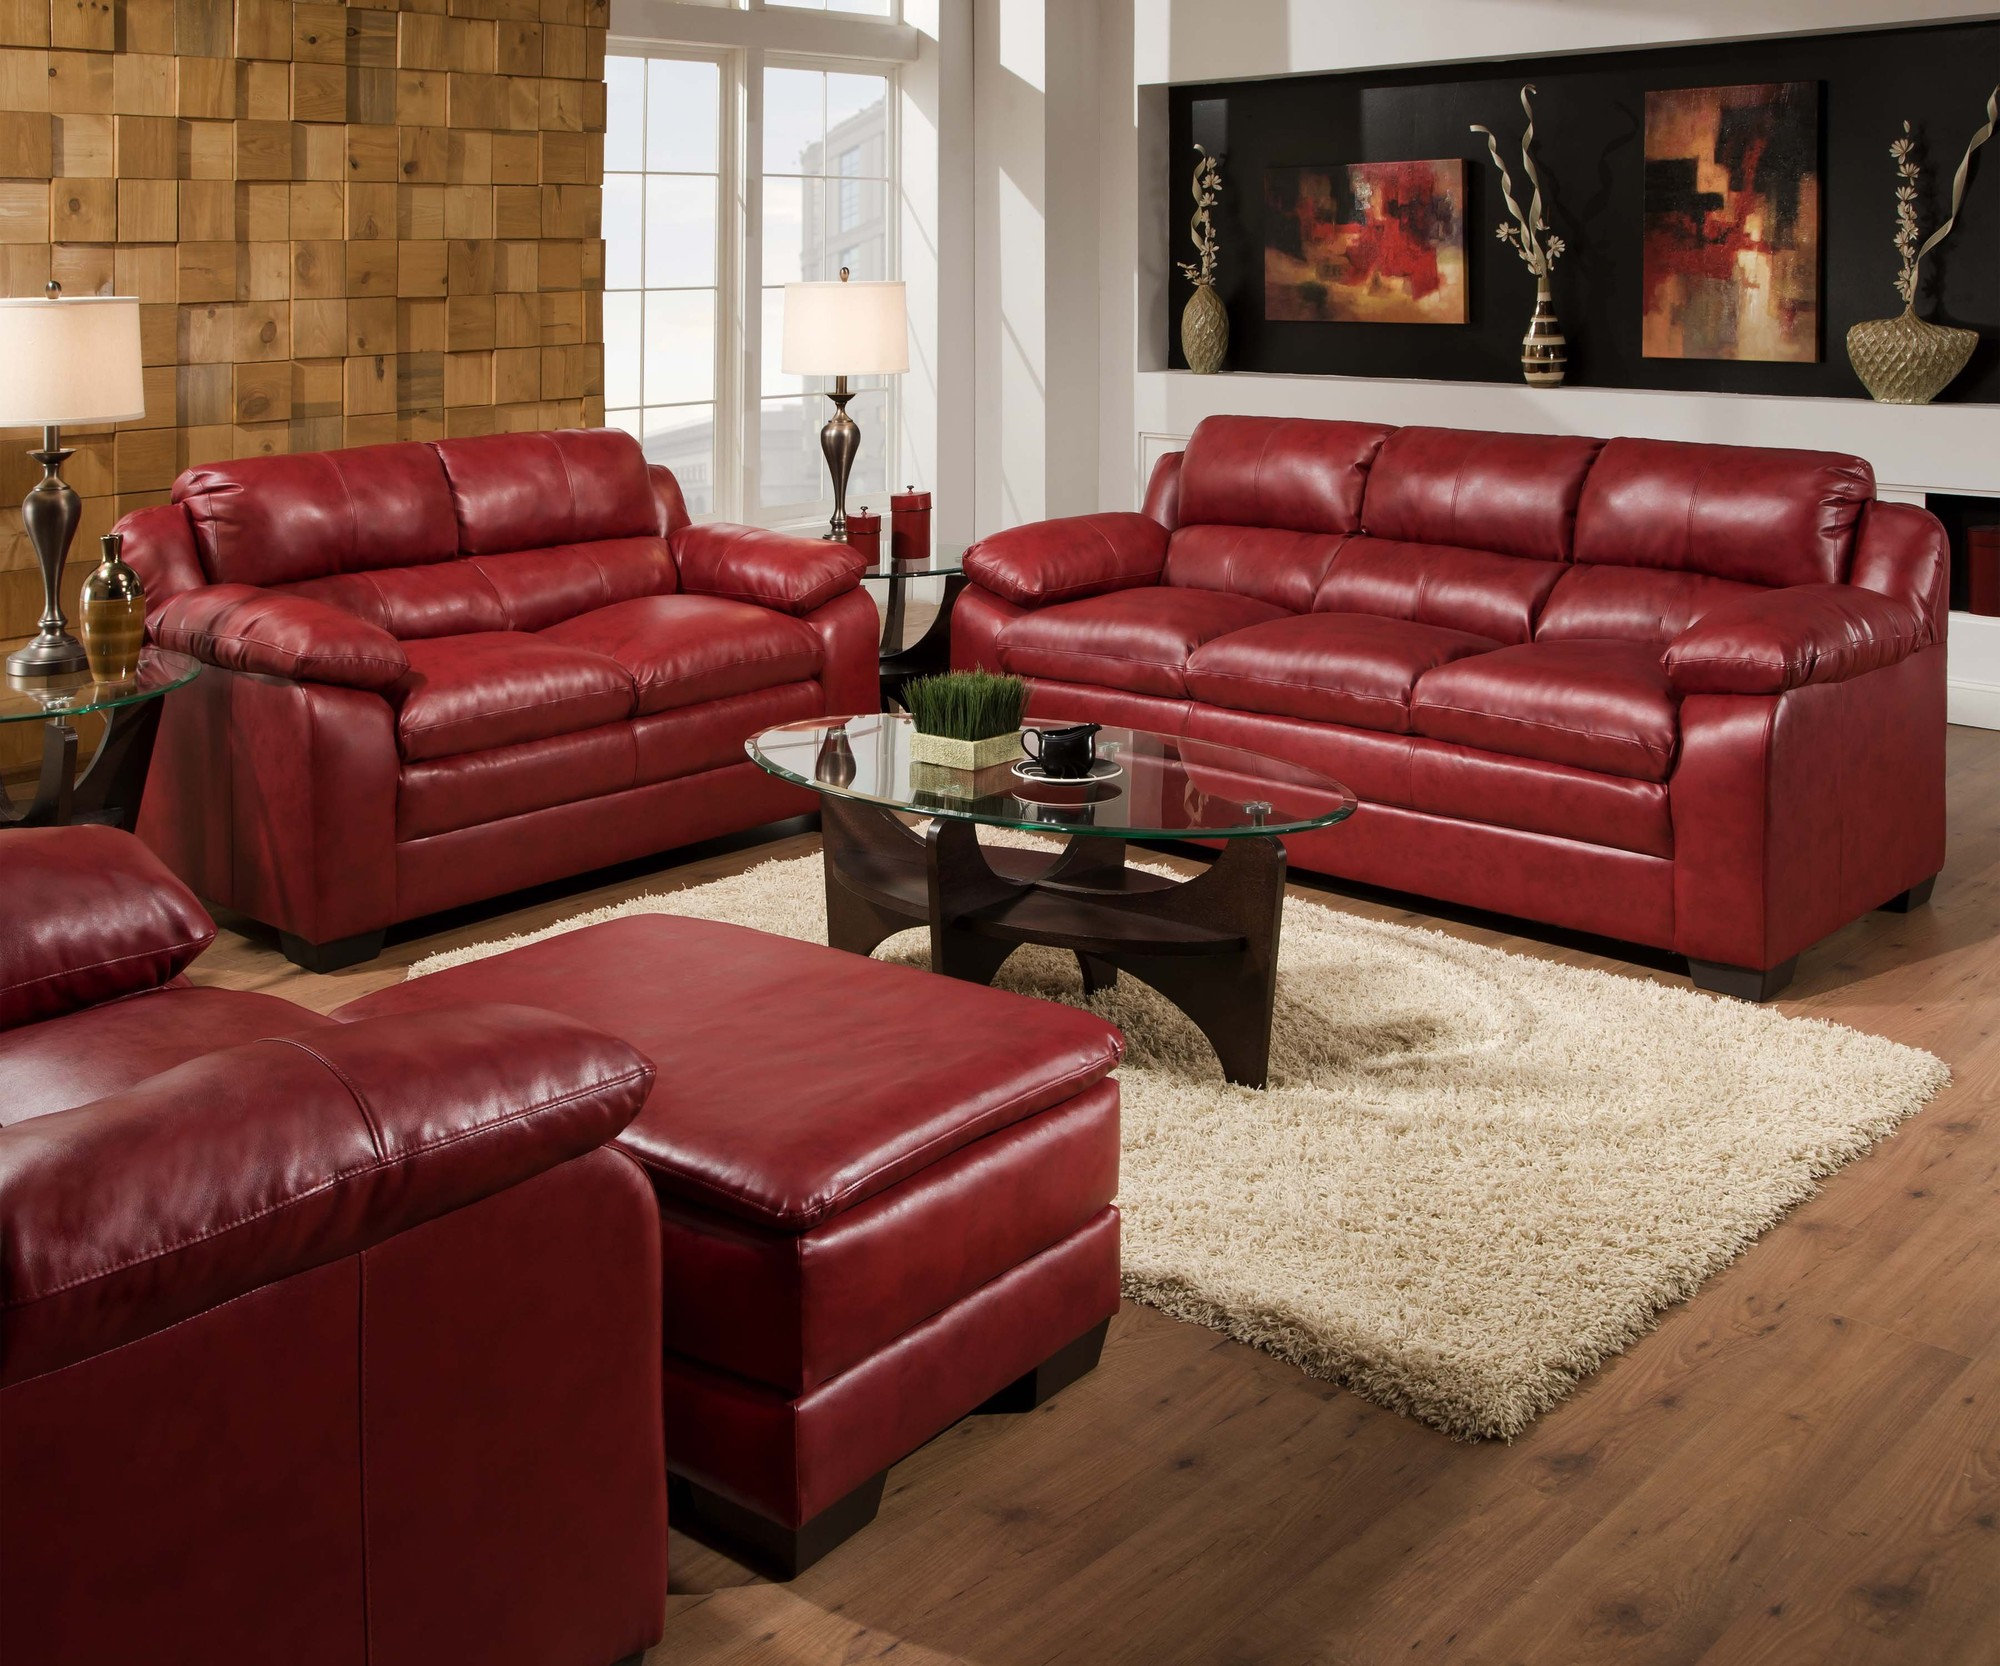 Simmons-Upholstery-Soho-Cardinal-Red-Living-Room-Collection